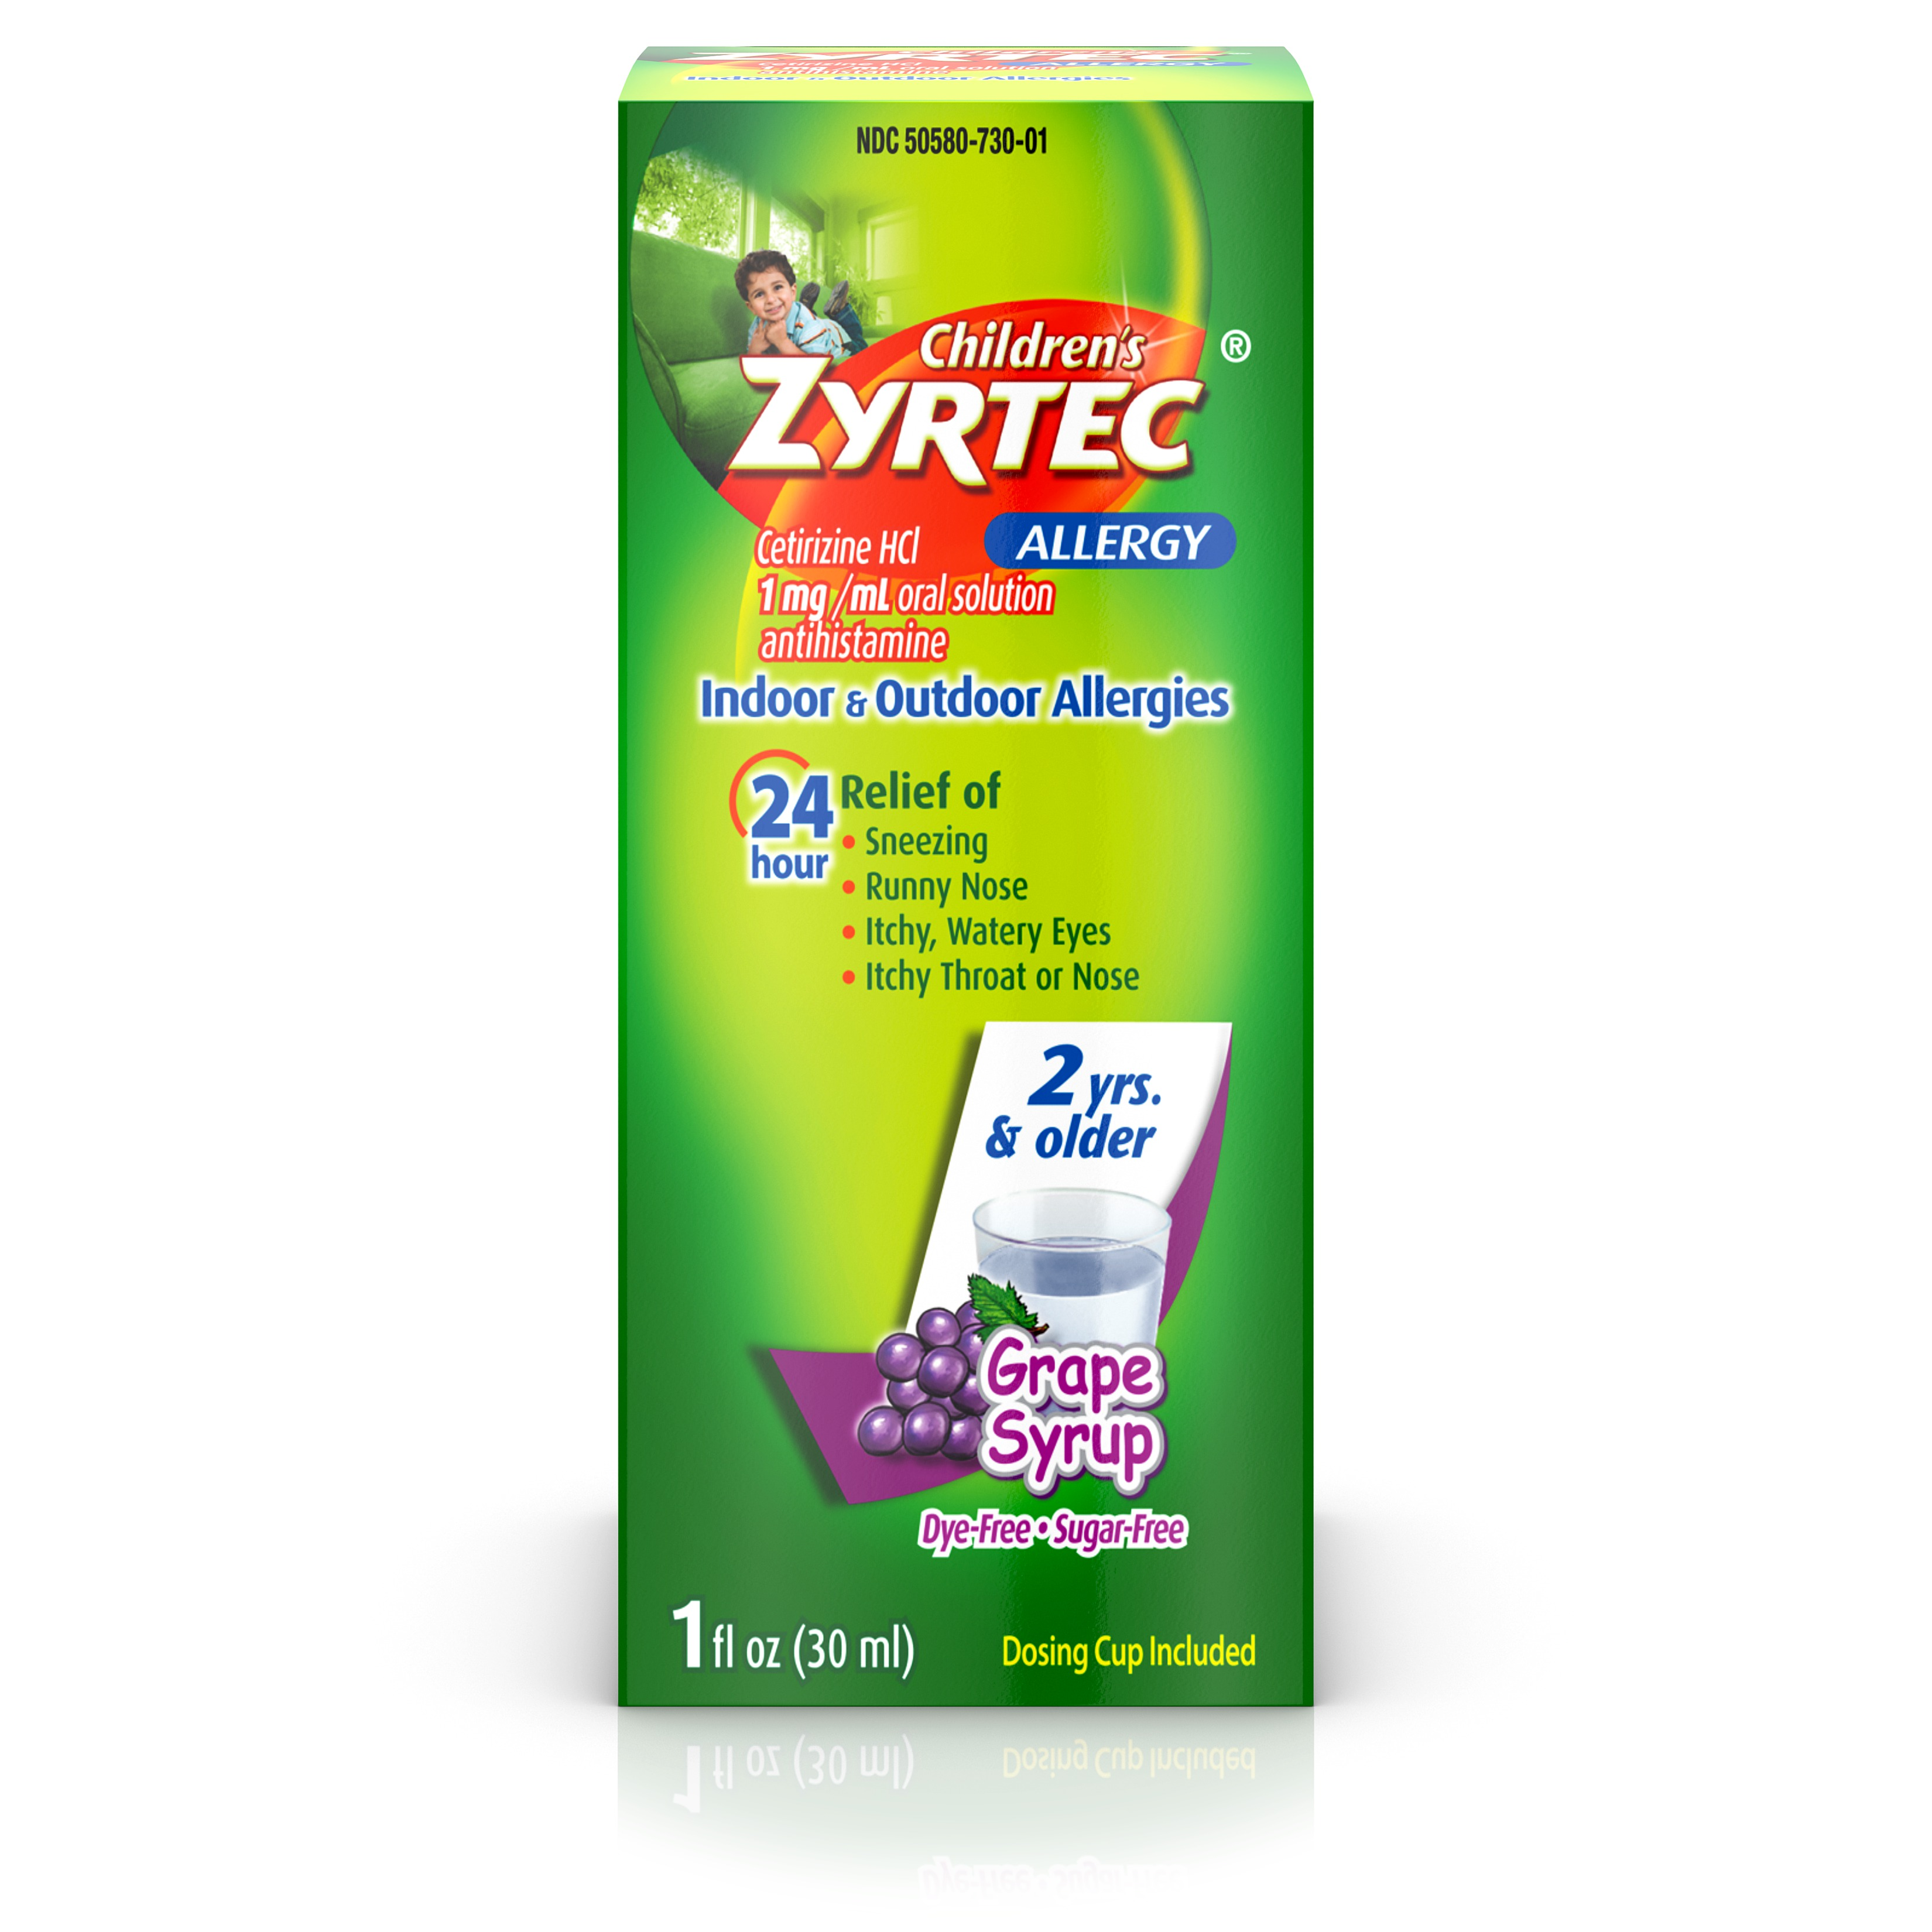 Zyrtec 24 Hr Children's Allergy Relief Syrup, Grape Flavor, 1 fl. oz